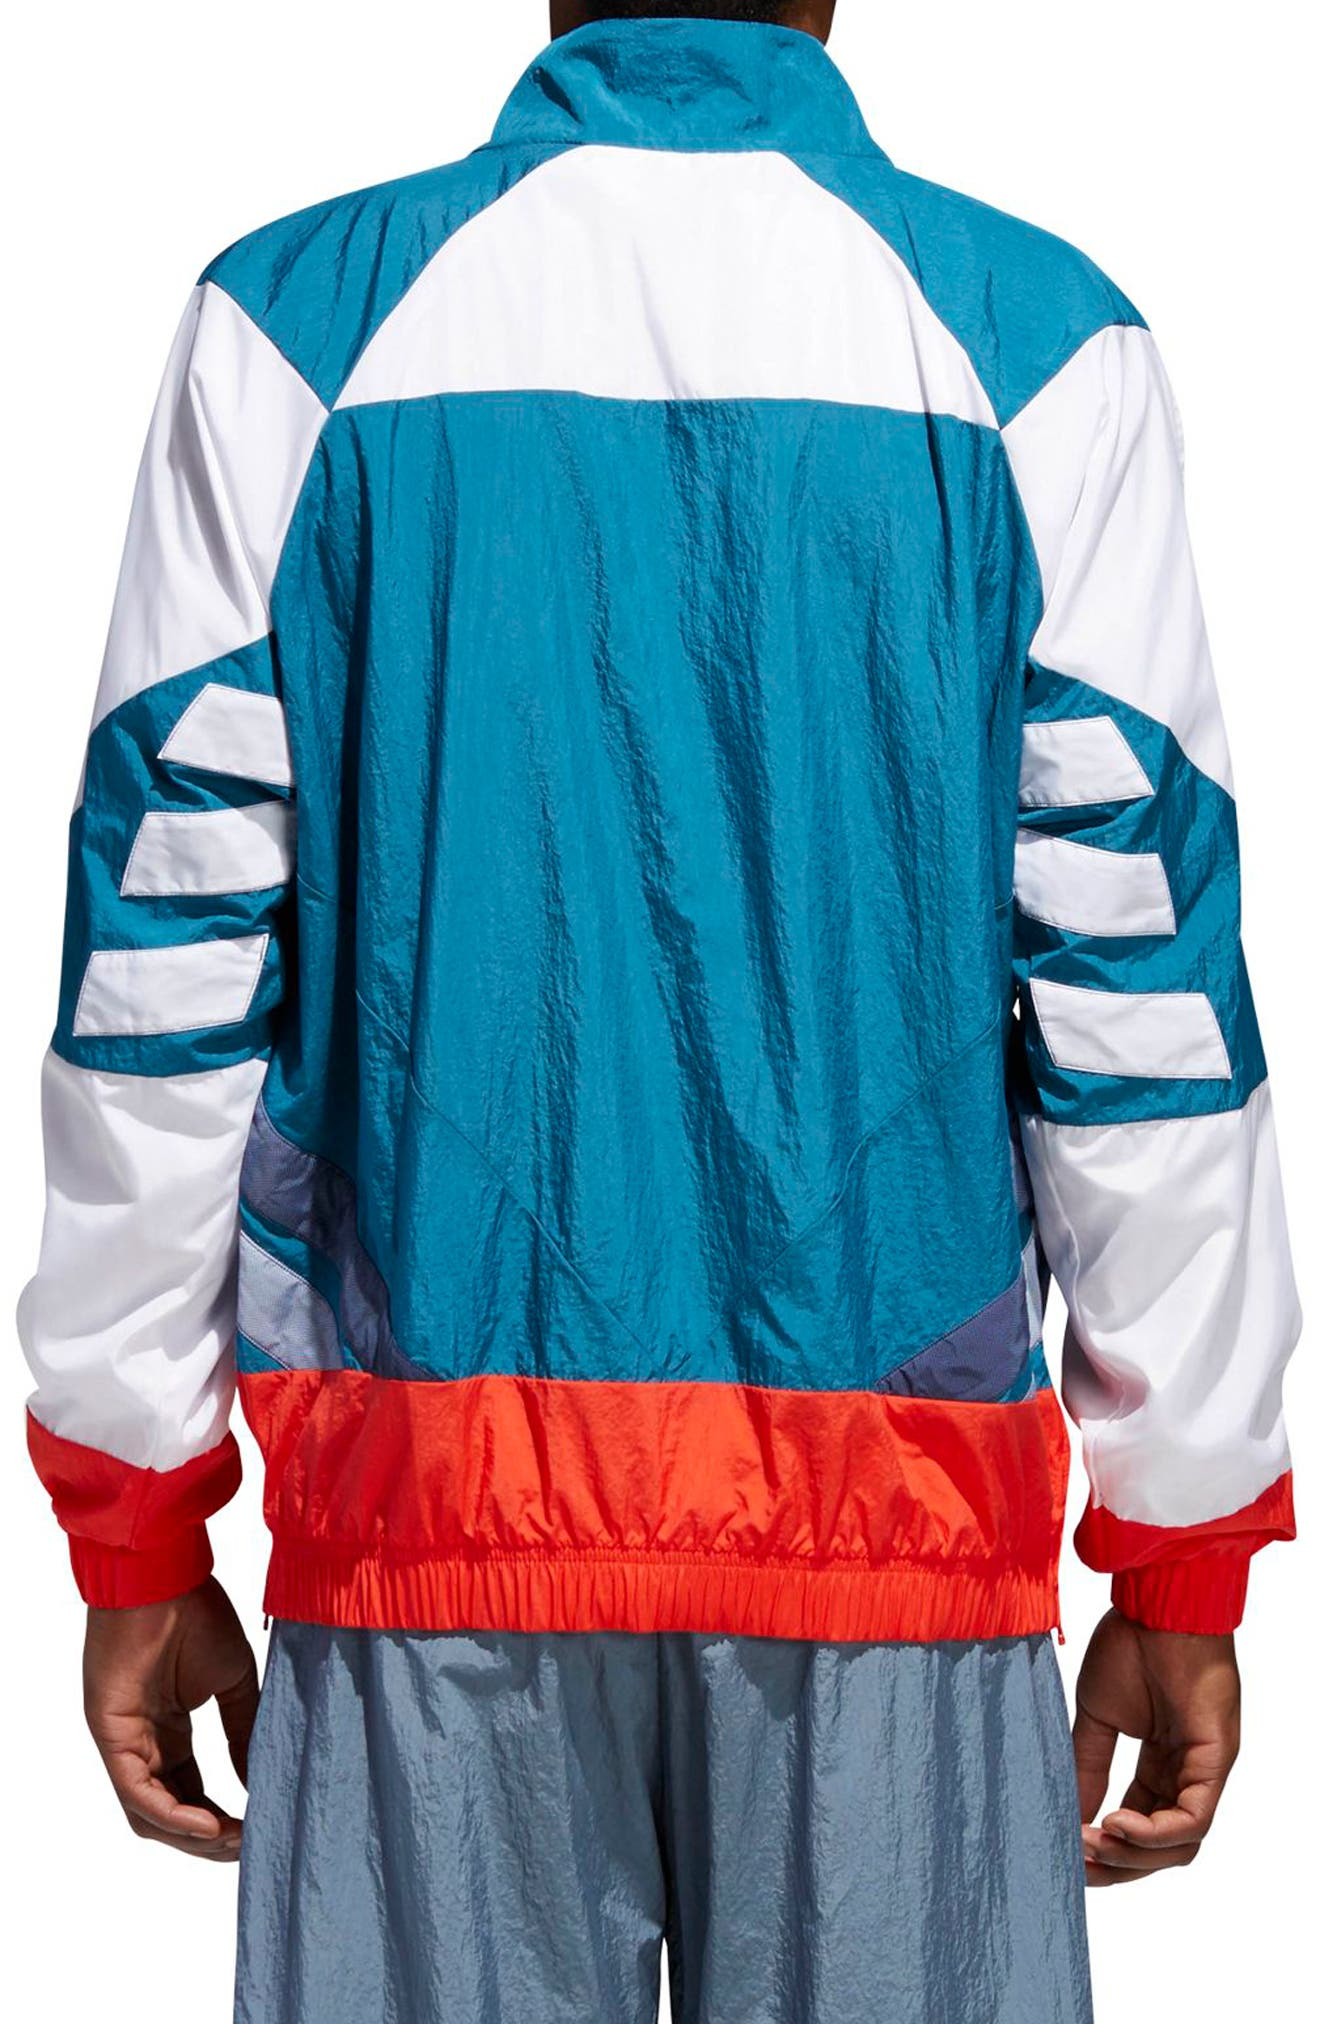 V Stripes Windbreaker,                             Alternate thumbnail 2, color,                             Hii Res Red